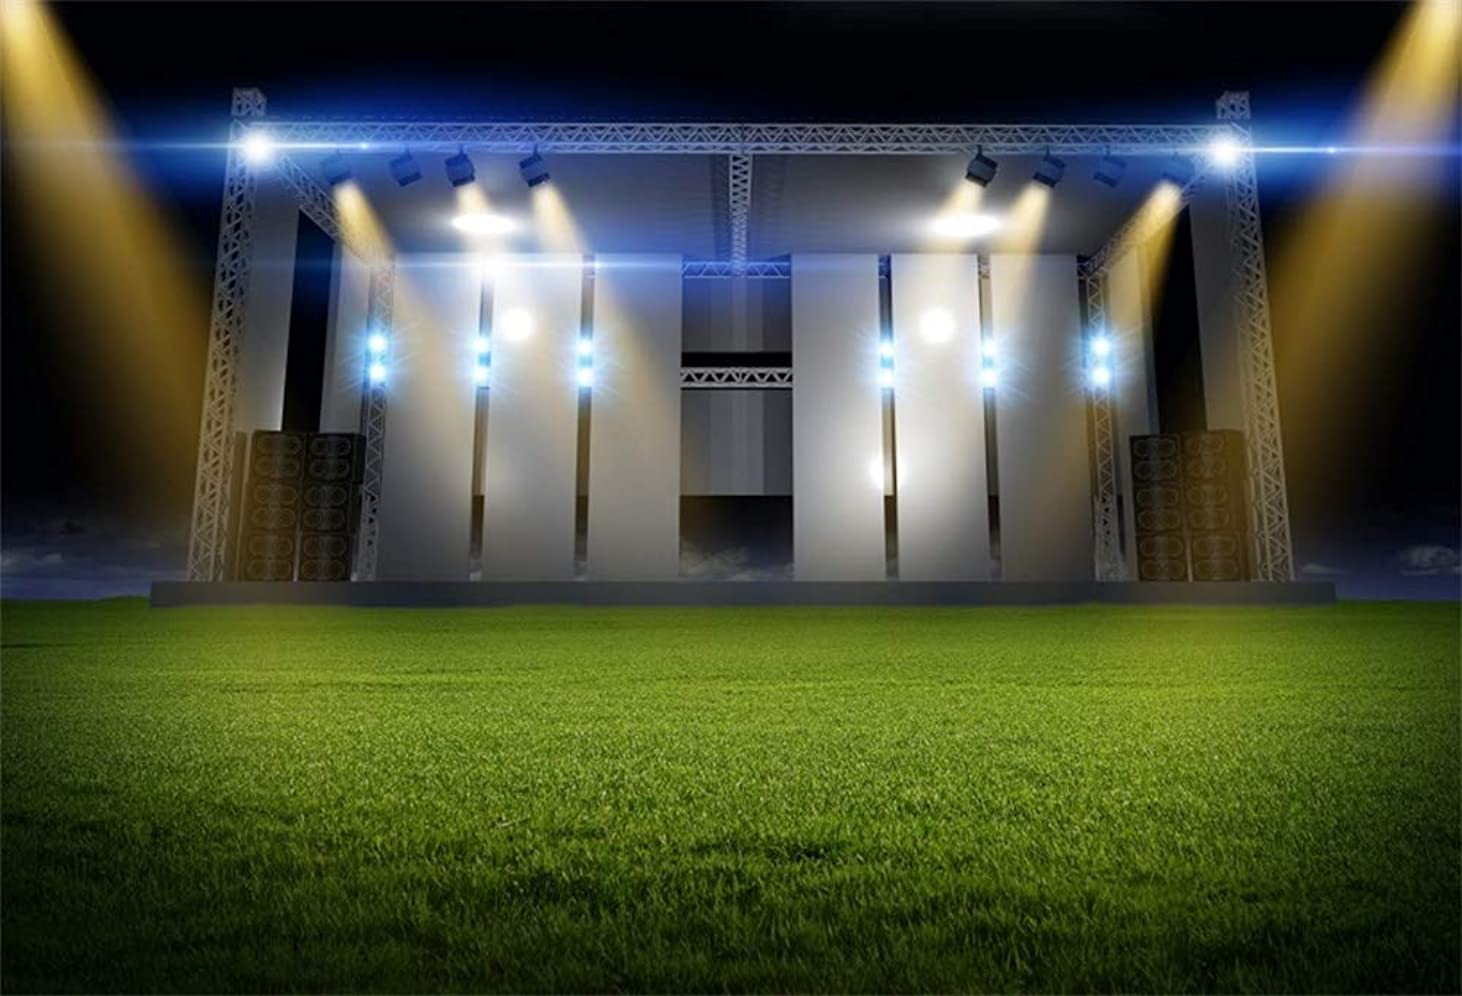 AOFOTO 5x3ft Stadium Backdrop Grassland Stage Lights Curtain Photography Background School Athletic Contests Award Party Term Begins School Opens Ceremony Studio Prop Video Drapes nudeq670976